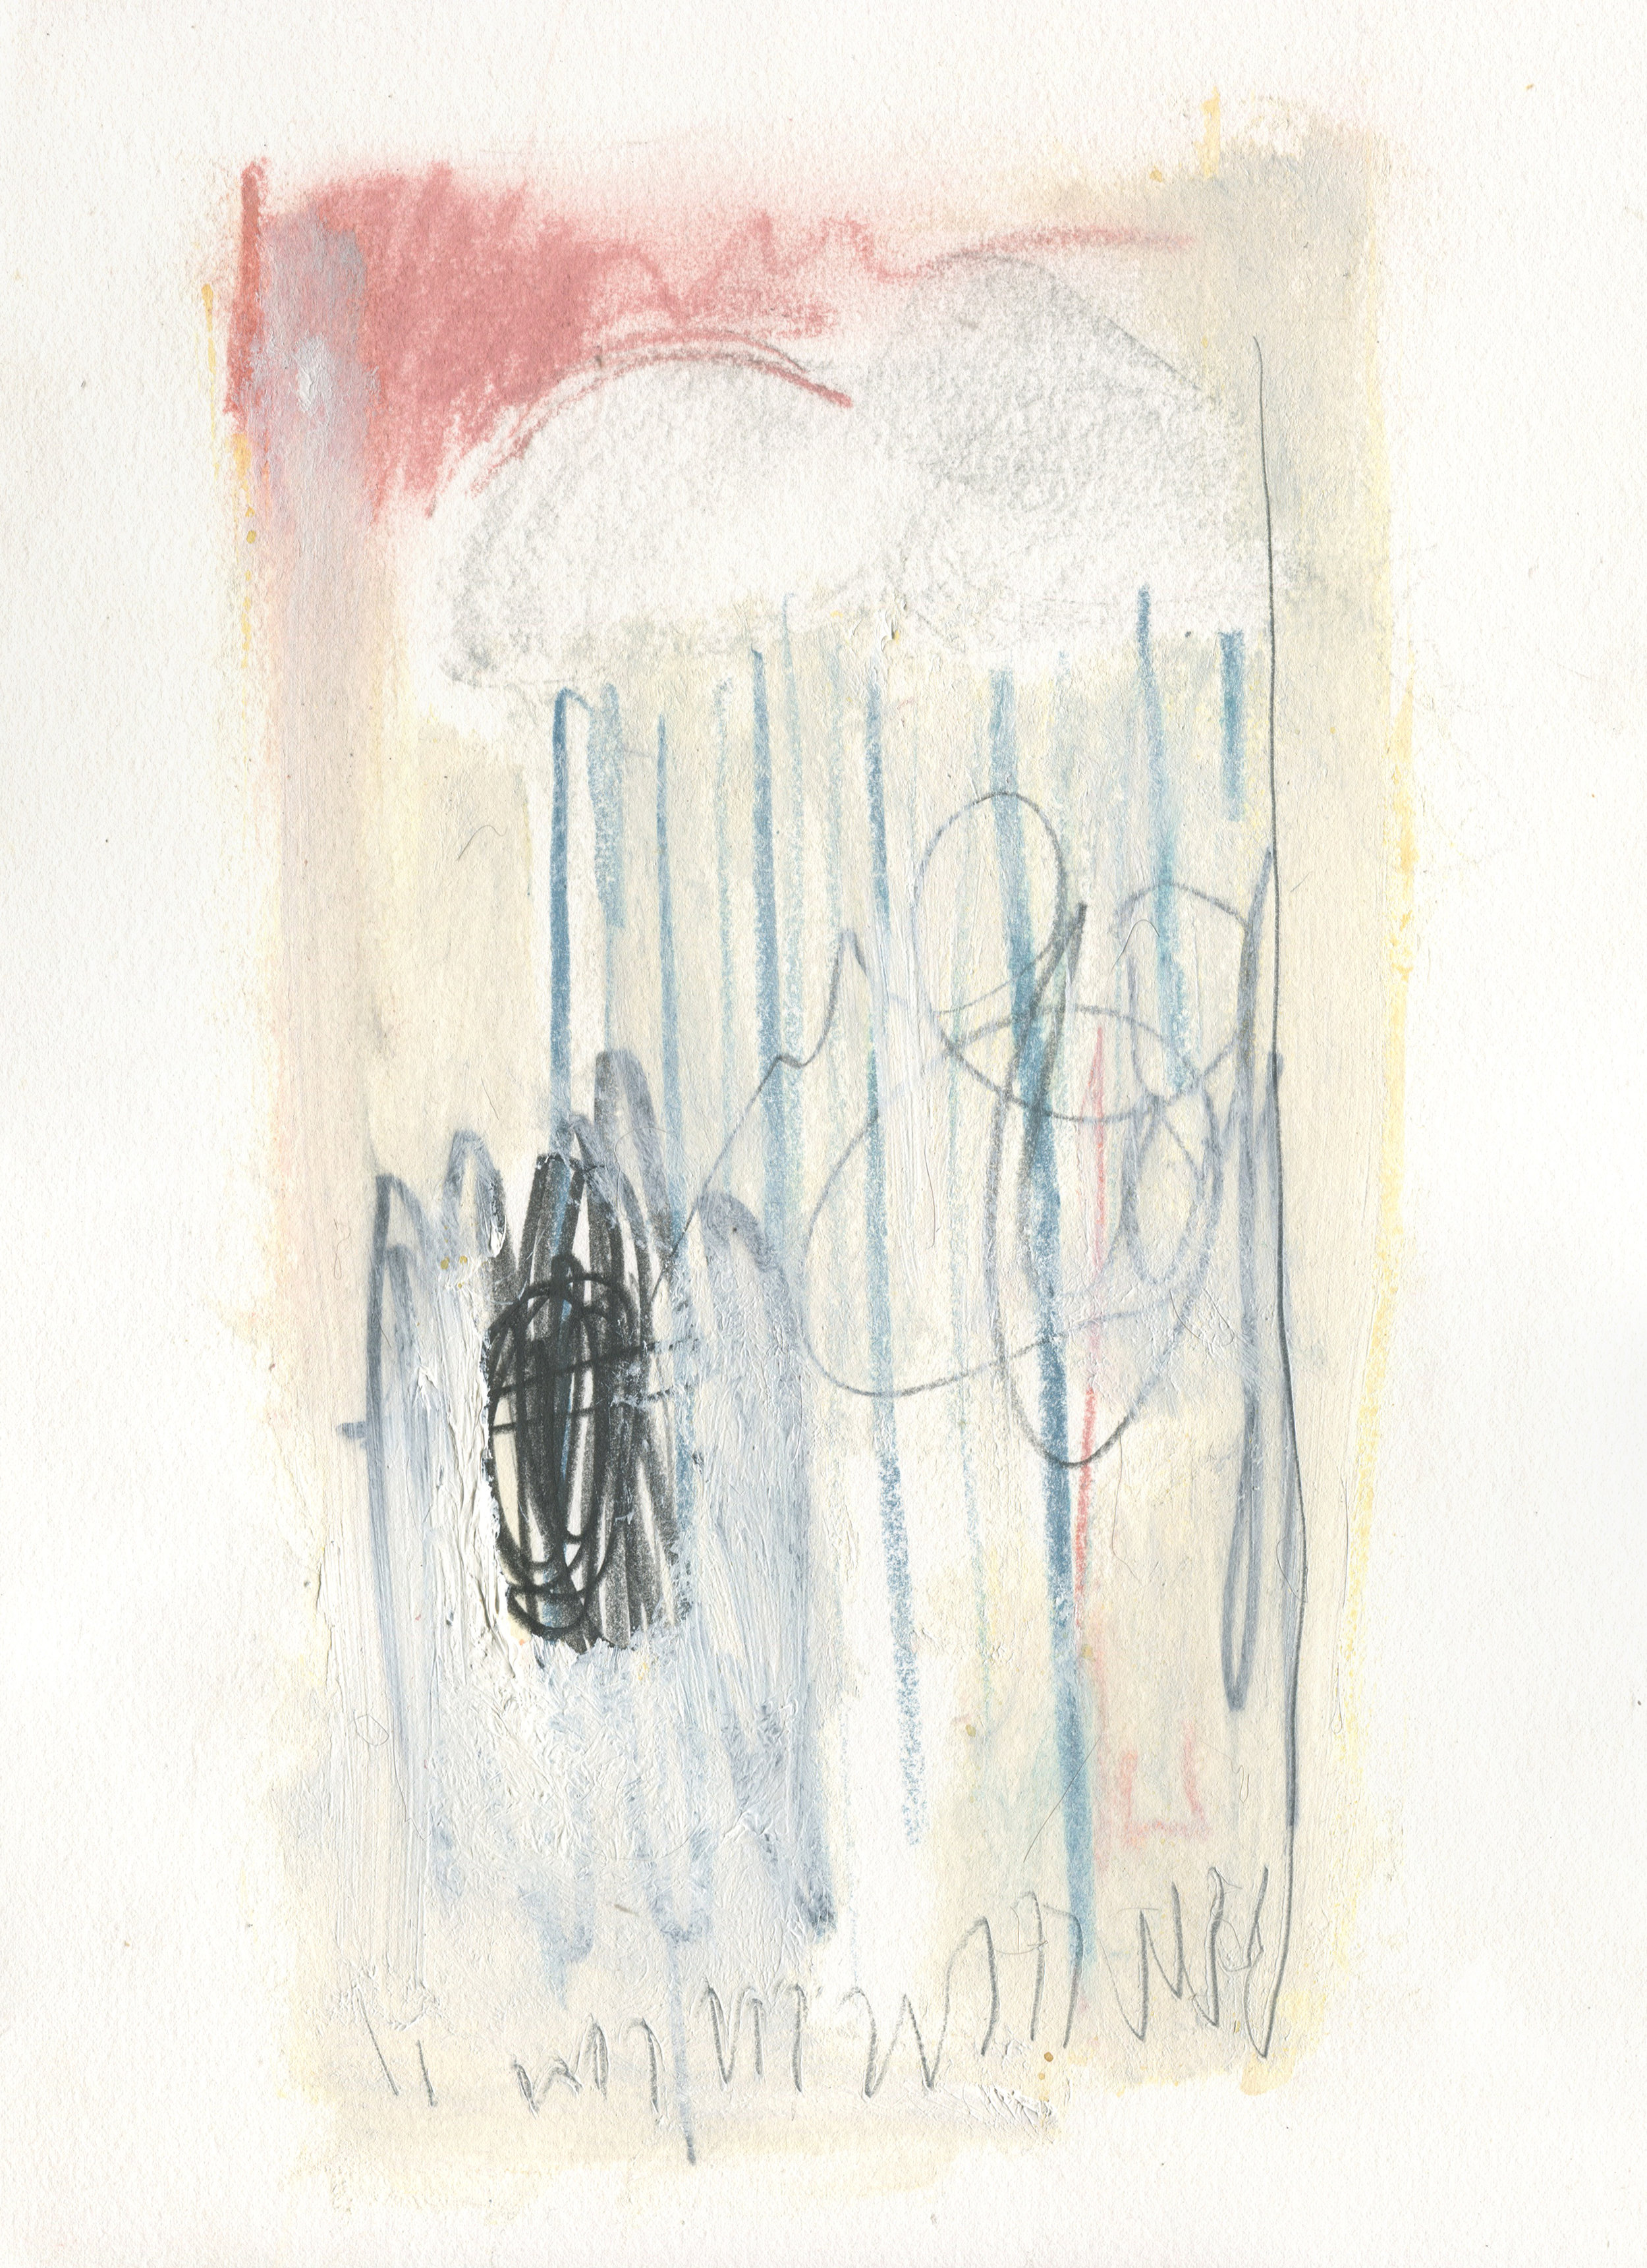 Caught in the Rain of a Slow Day, 2016  14 x 10 inches  Lithography Crayon, Chalk Pastel, Graphite, and Acrylic on Paper